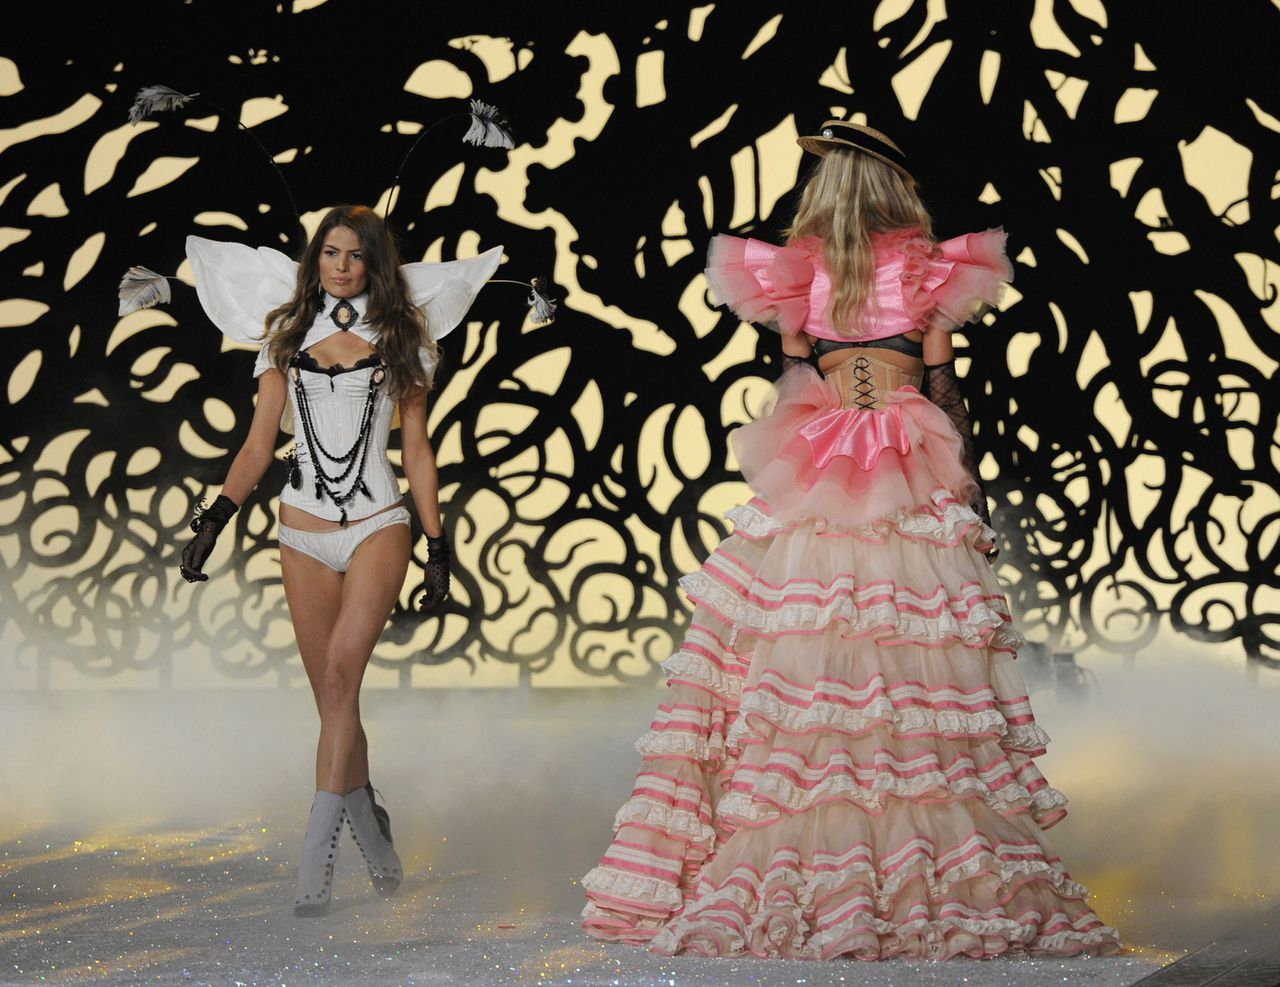 Models present creations at the Victoria's Secret Fashion Show November 9, 2011 in New York. The show will be broadcast Tuesday, November 29, 2011. AFP PHOTO/TIMOTHY A. CLARY